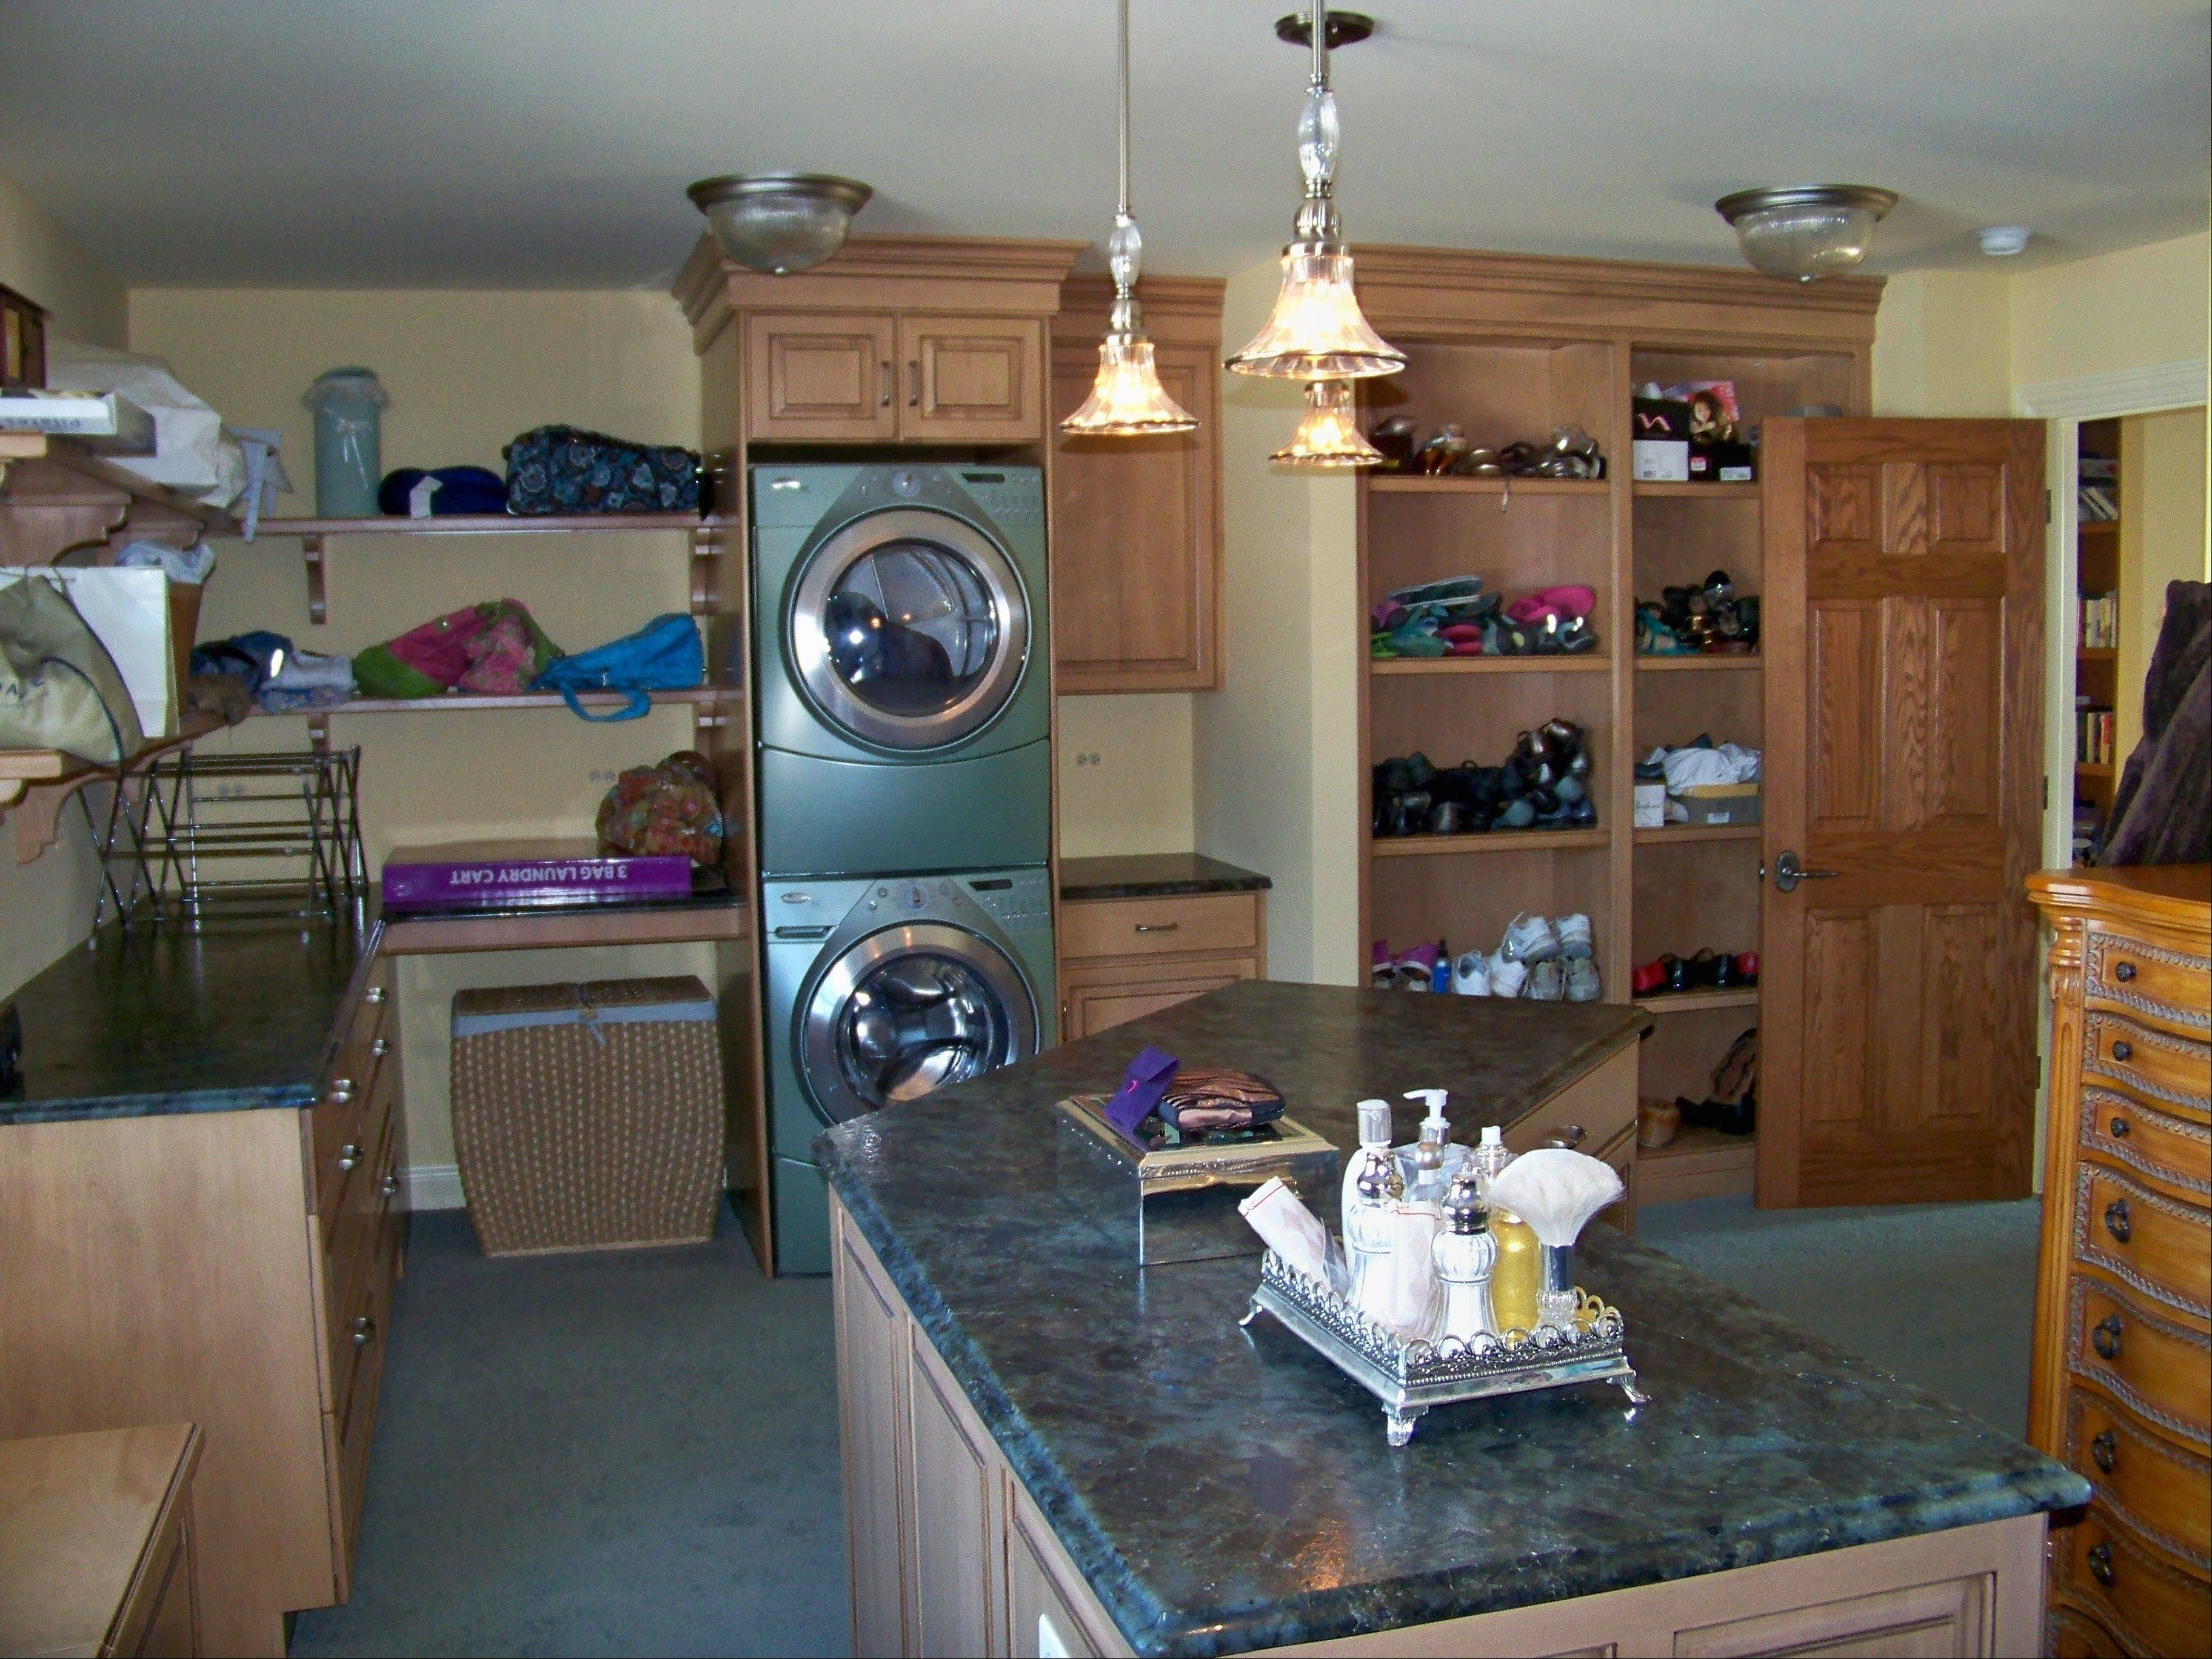 Some of McDowell Inc.'s projects and home additions for baby boomers have involved moving laundry rooms out of basements, or creating first-floor master suites.